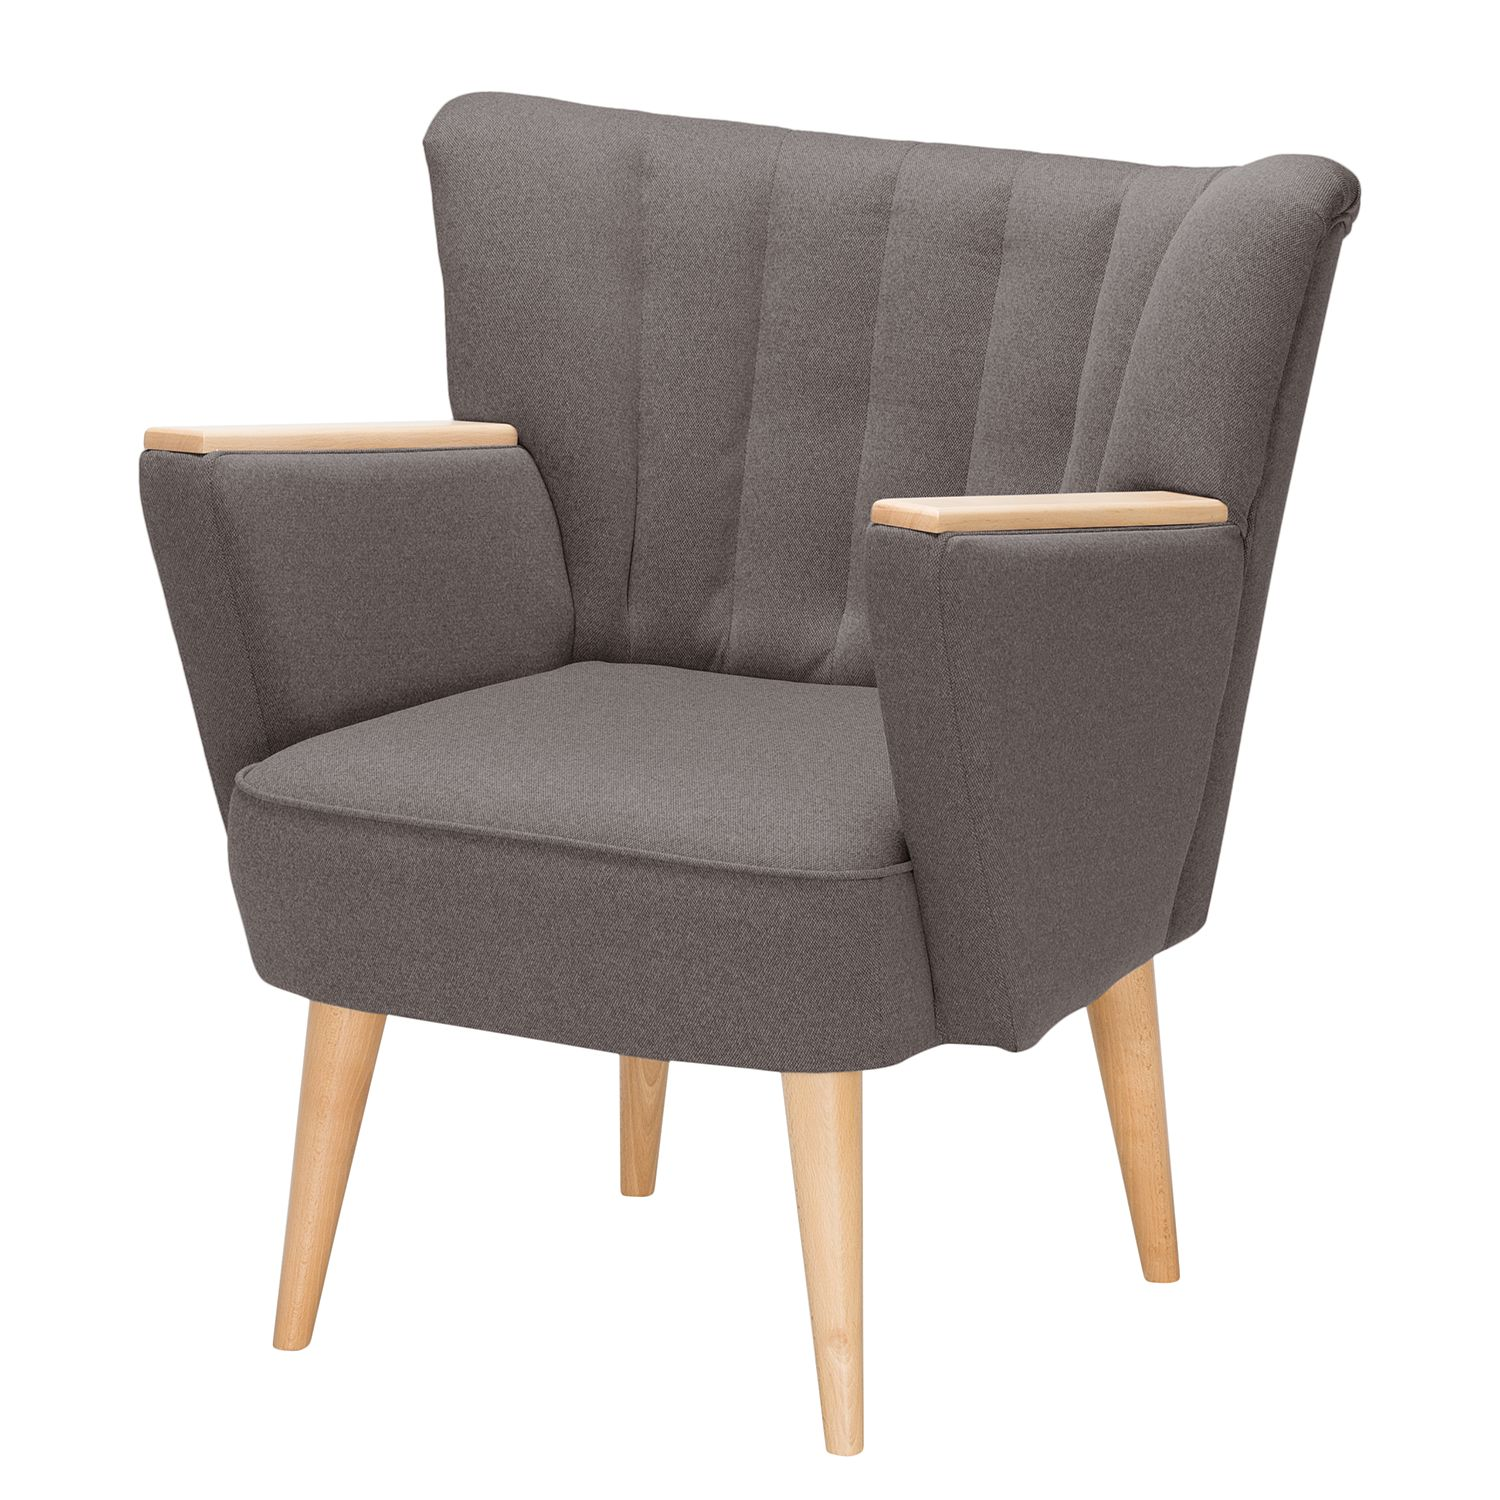 Fauteuil Bauro